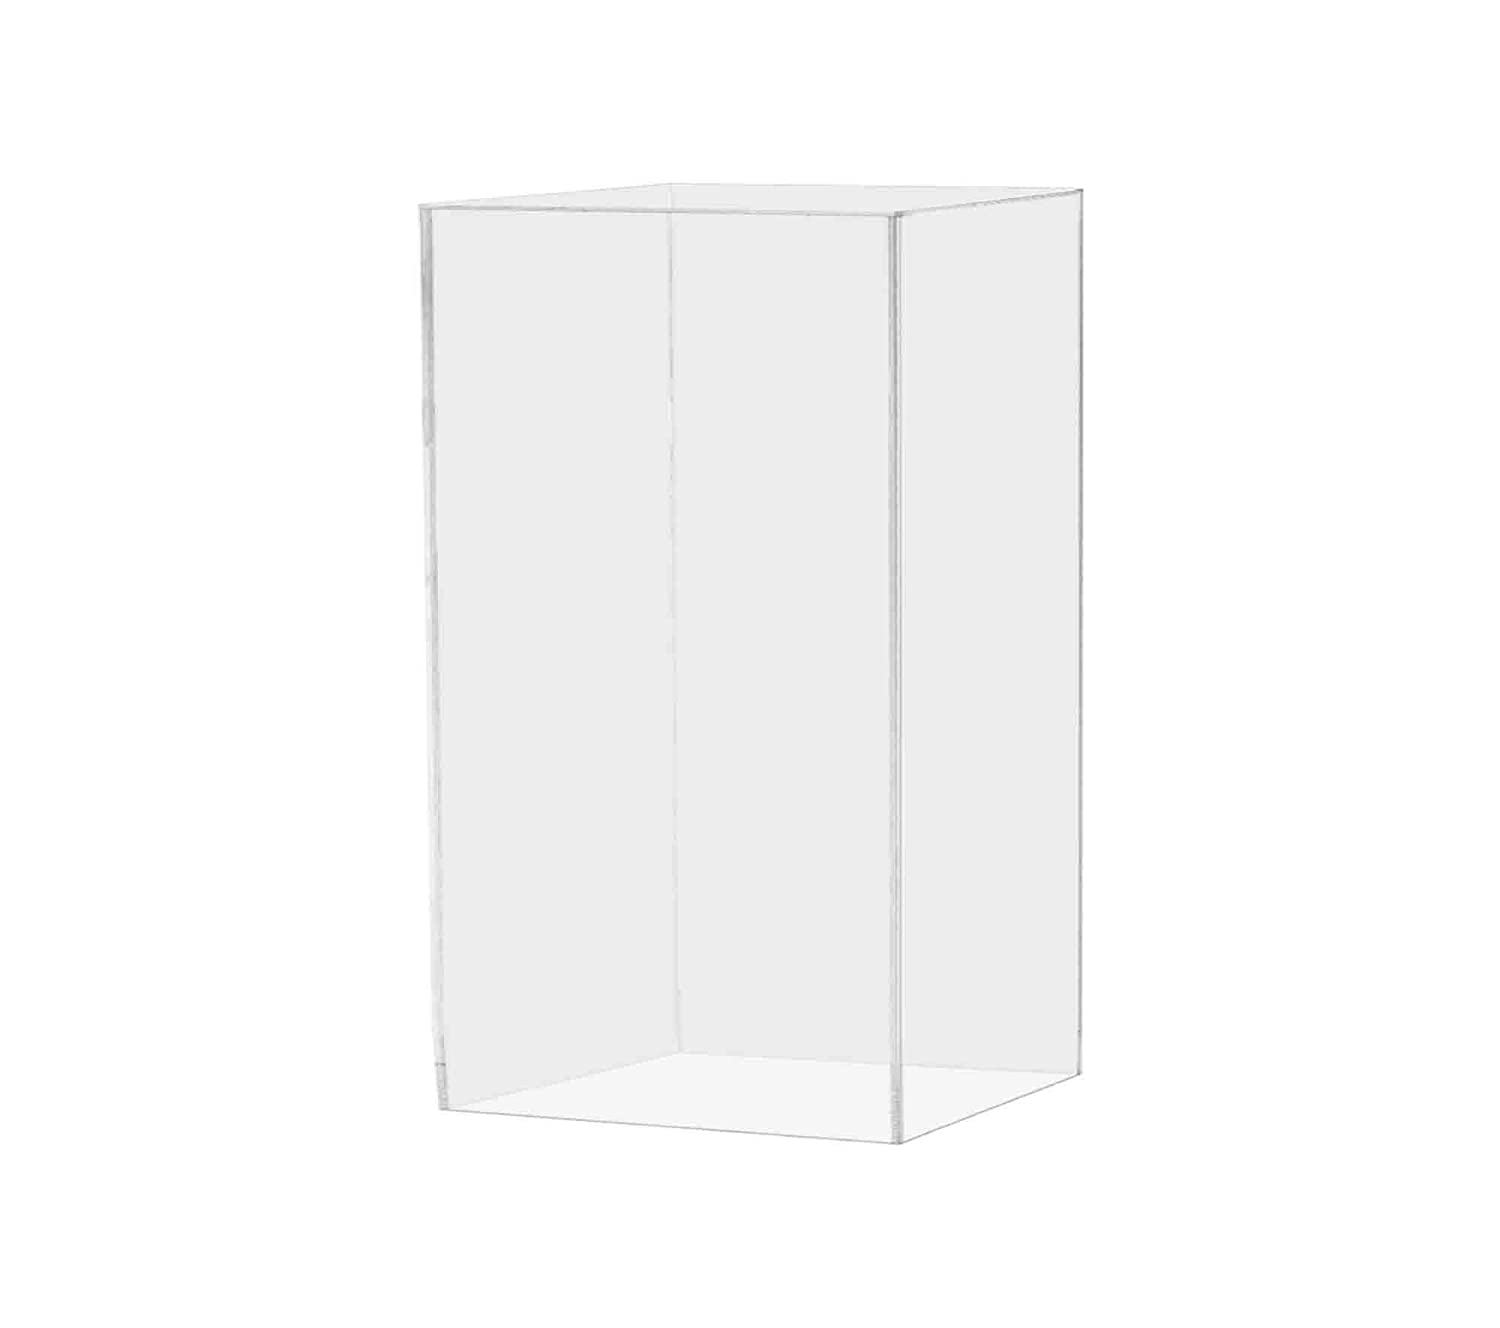 """Marketing Holders Pedestal Art Stand Easel Display Decor Collectible Cube Pillar Post Prop Column Mast Riser 5 Sided Show Case 12""""w x 12""""d x 24""""h Pack of 1"""